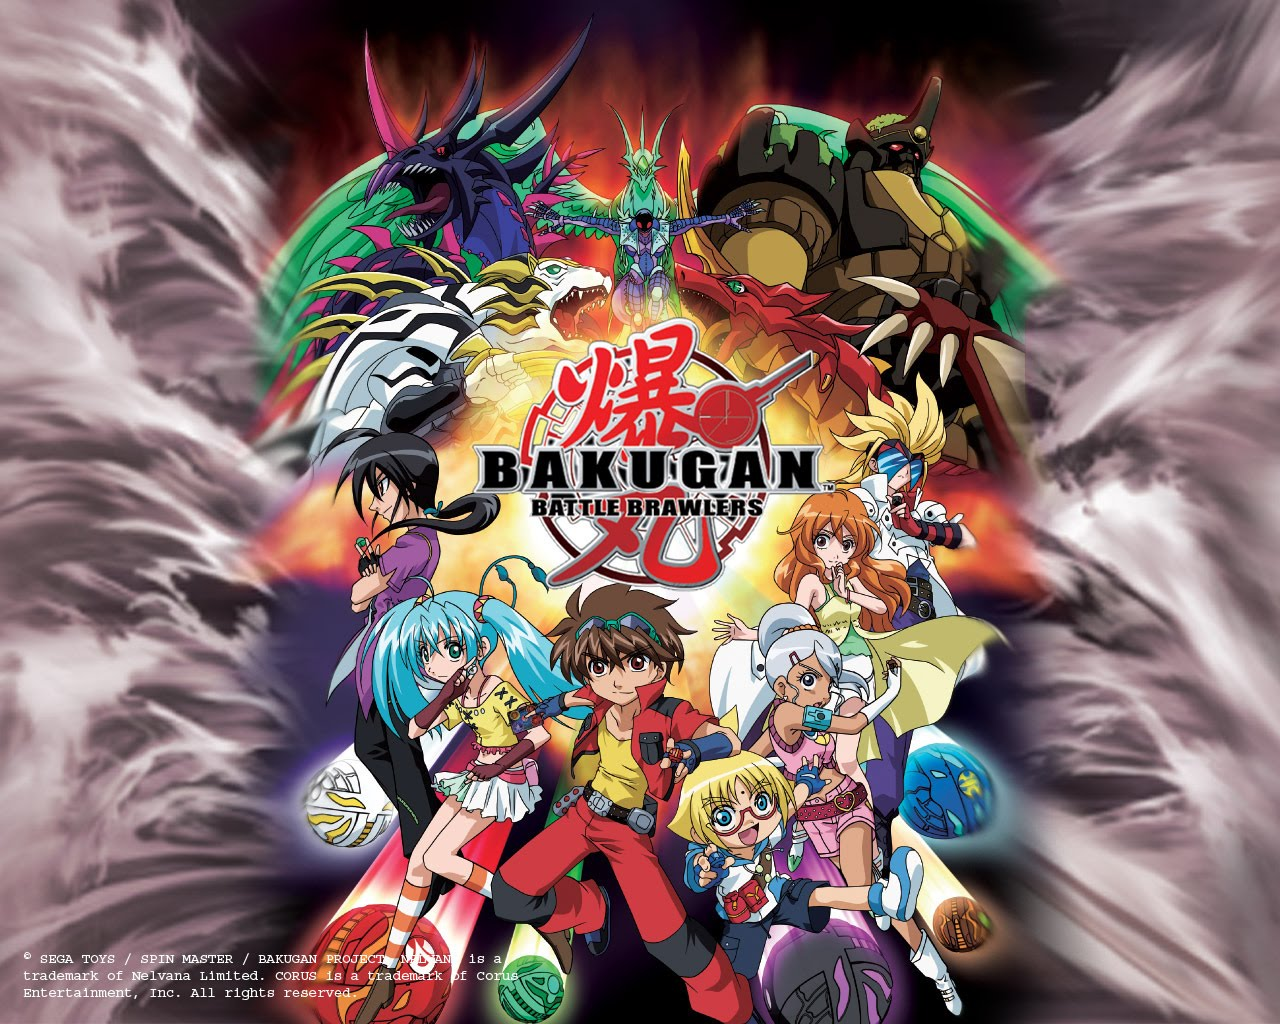 Bakugan Porn Game Best is bakugan evil? does it have occult ties?-part 1 | one foot in